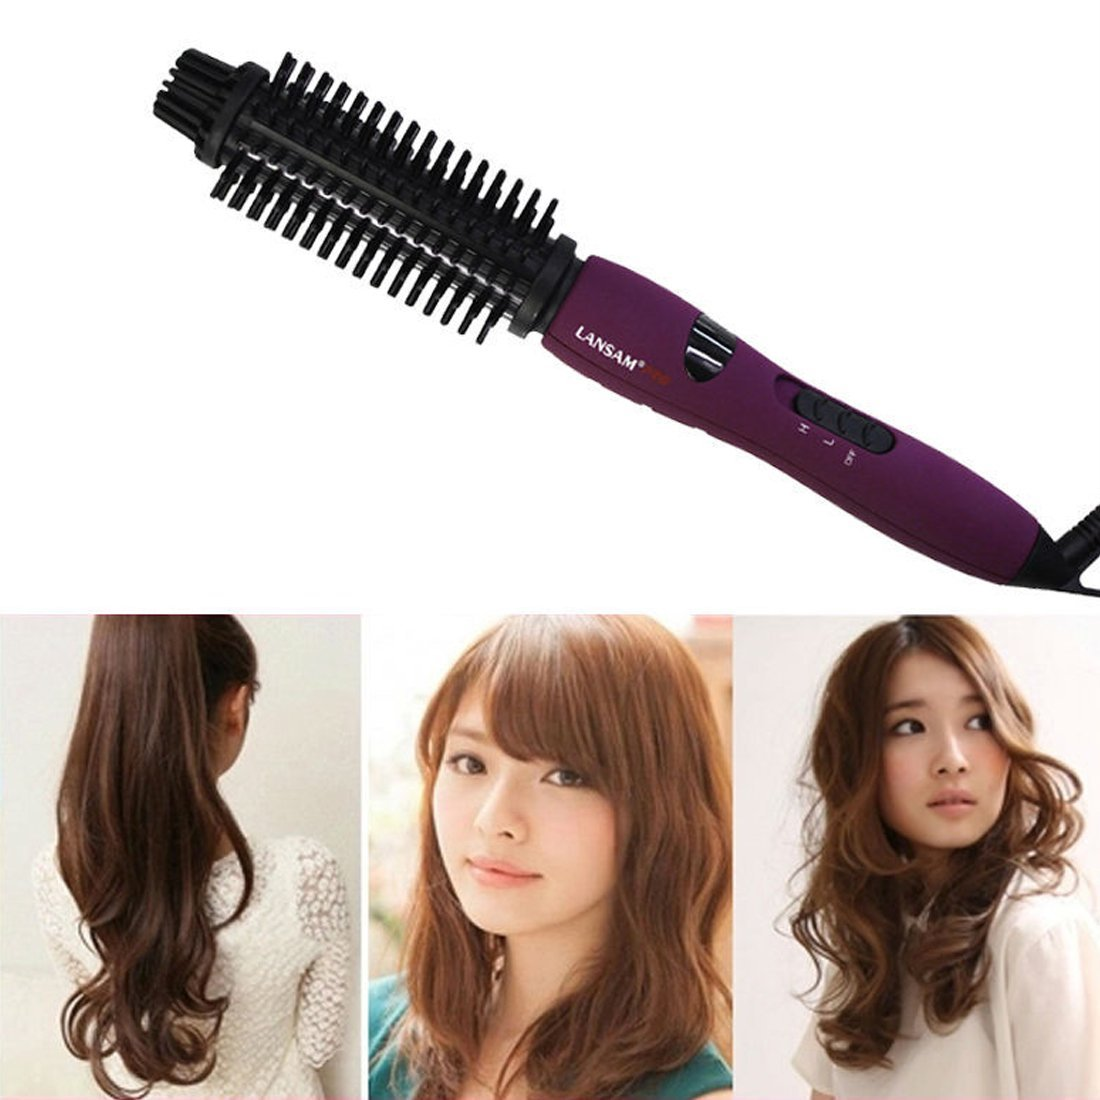 Get Quotations Longqi Beauty Hair Flat Straightener Iron Curler Irons Hot Brush Combs